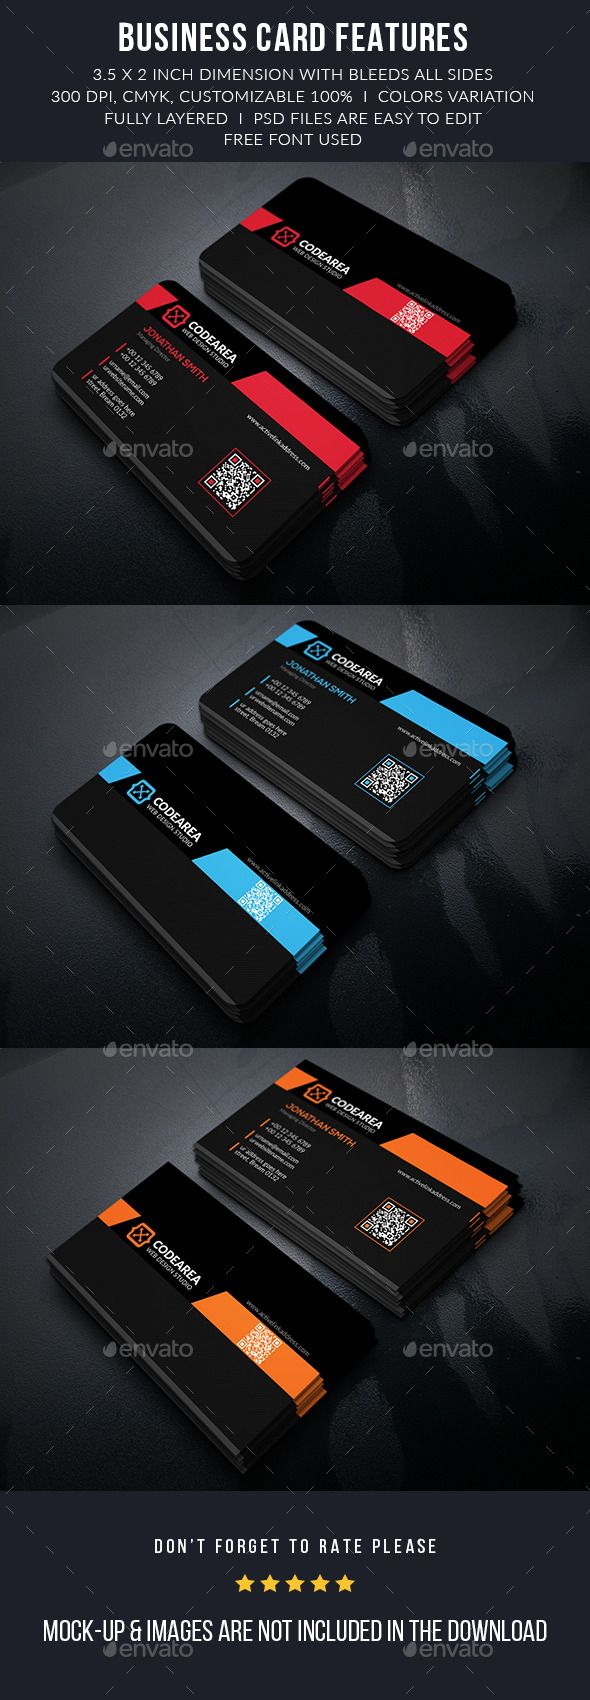 Codearea Modern Business Cards - Business Card Template PSD. Download here: http://graphicriver.net/item/codearea-modern-business-cards/12498987?s_rank=1763&ref=yinkira